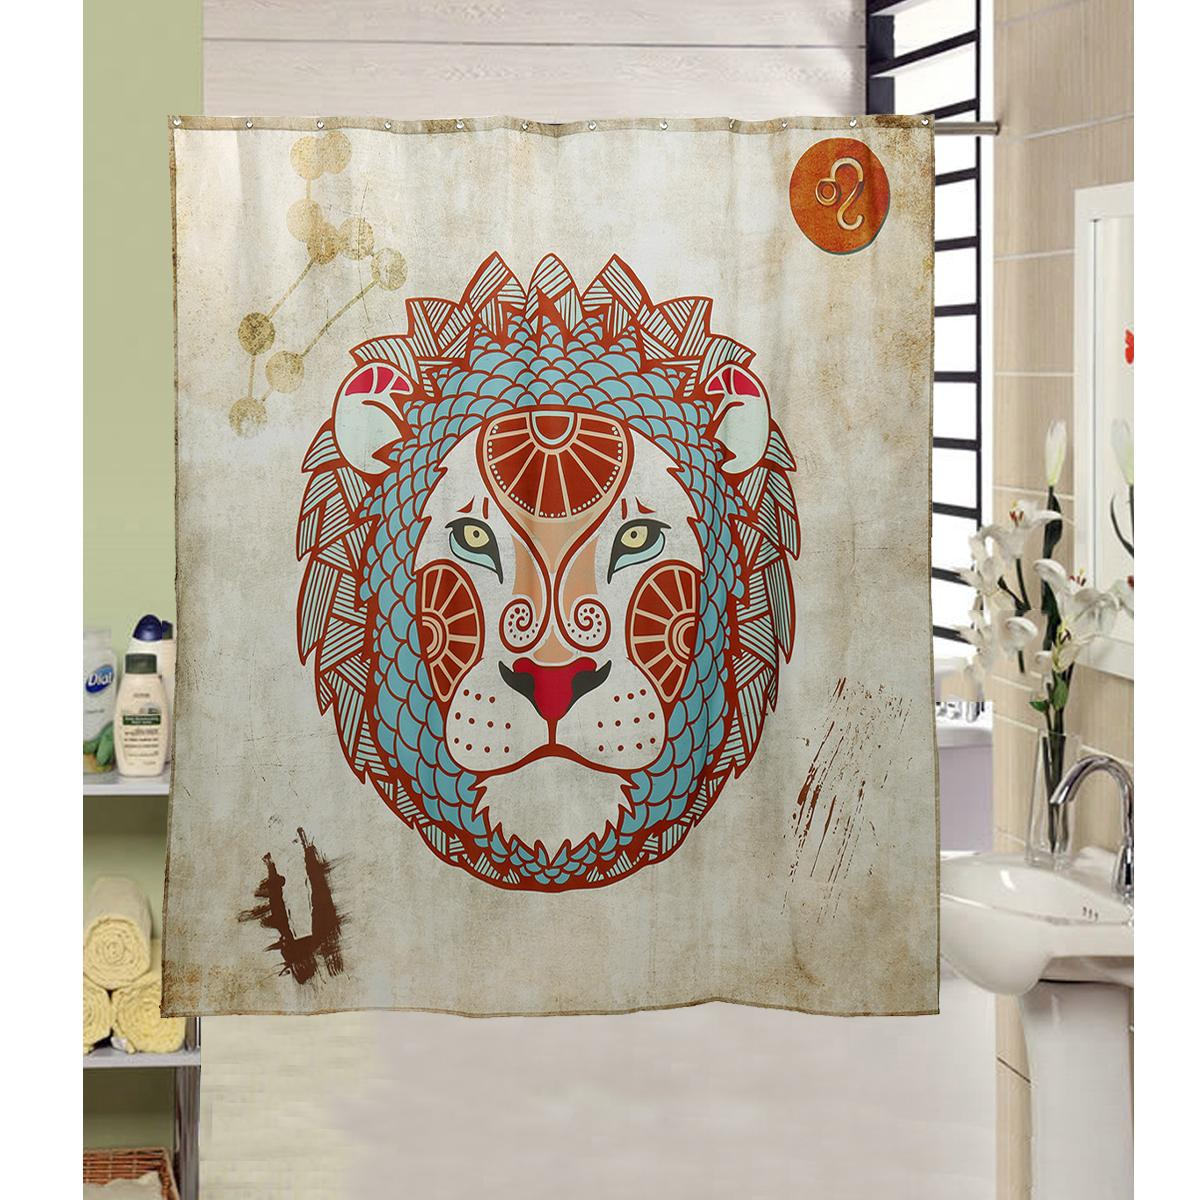 Special Offer Modern Lion S Head Waterproof Shower Curtain Hooks Peva Polyester Fabric Extra Long Wide 180x180cm 71x 71